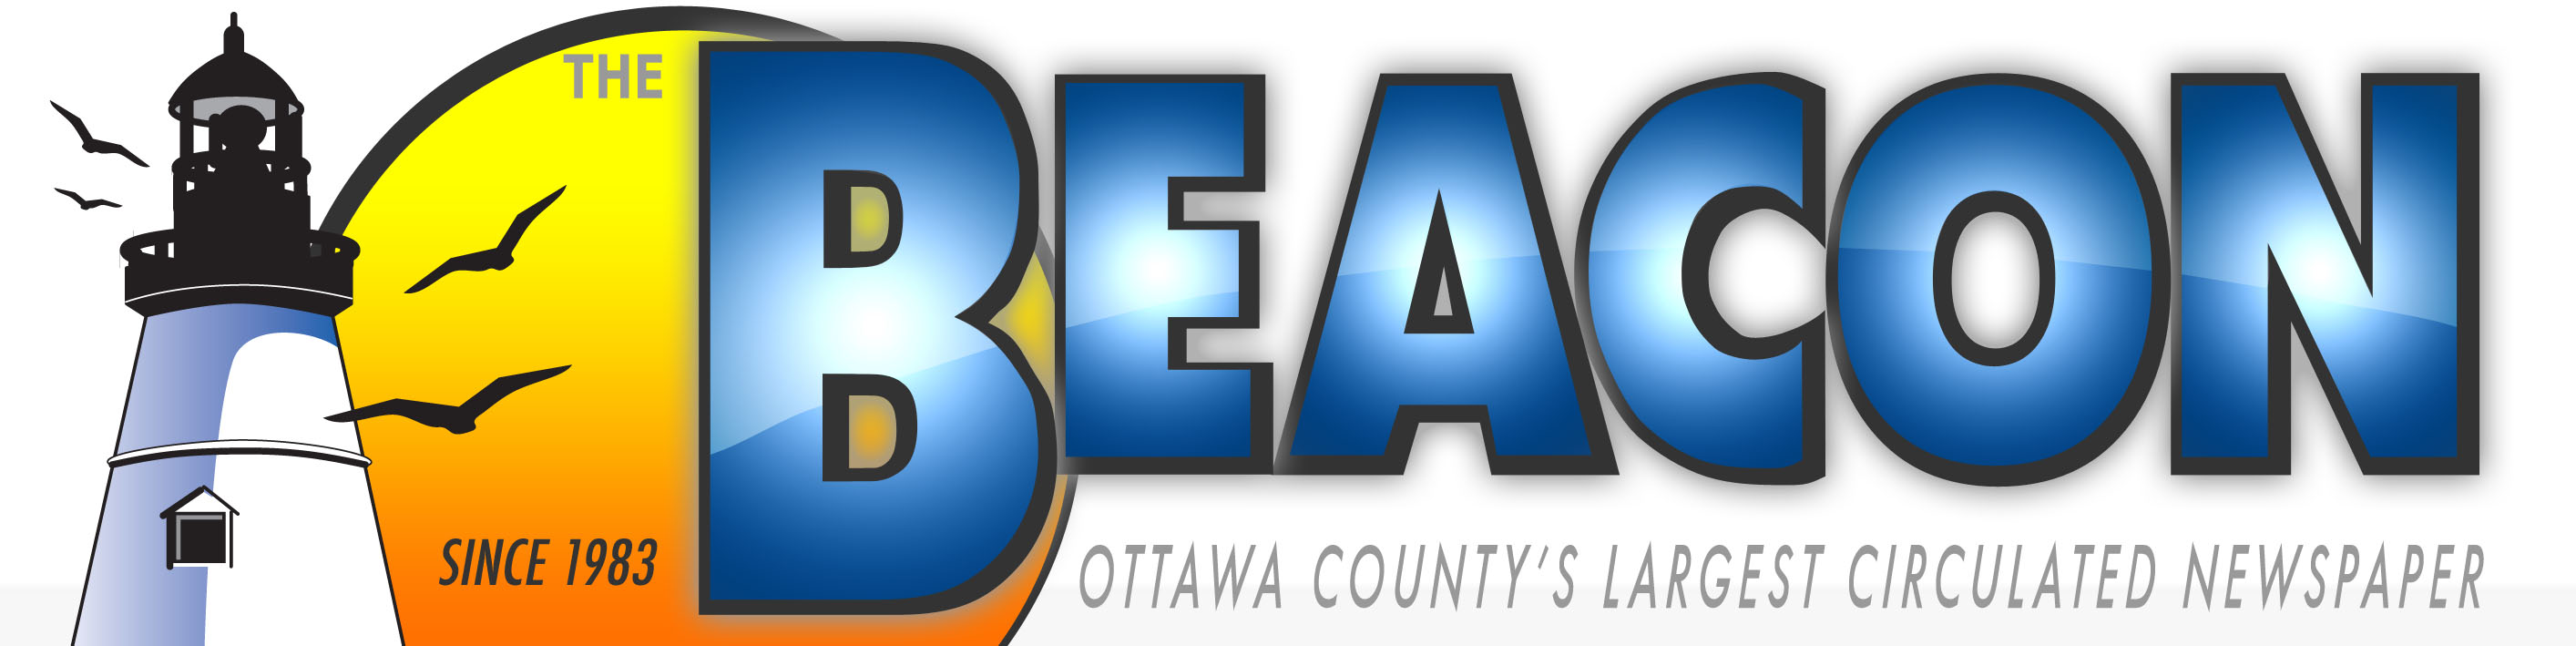 2010_beacon_logo